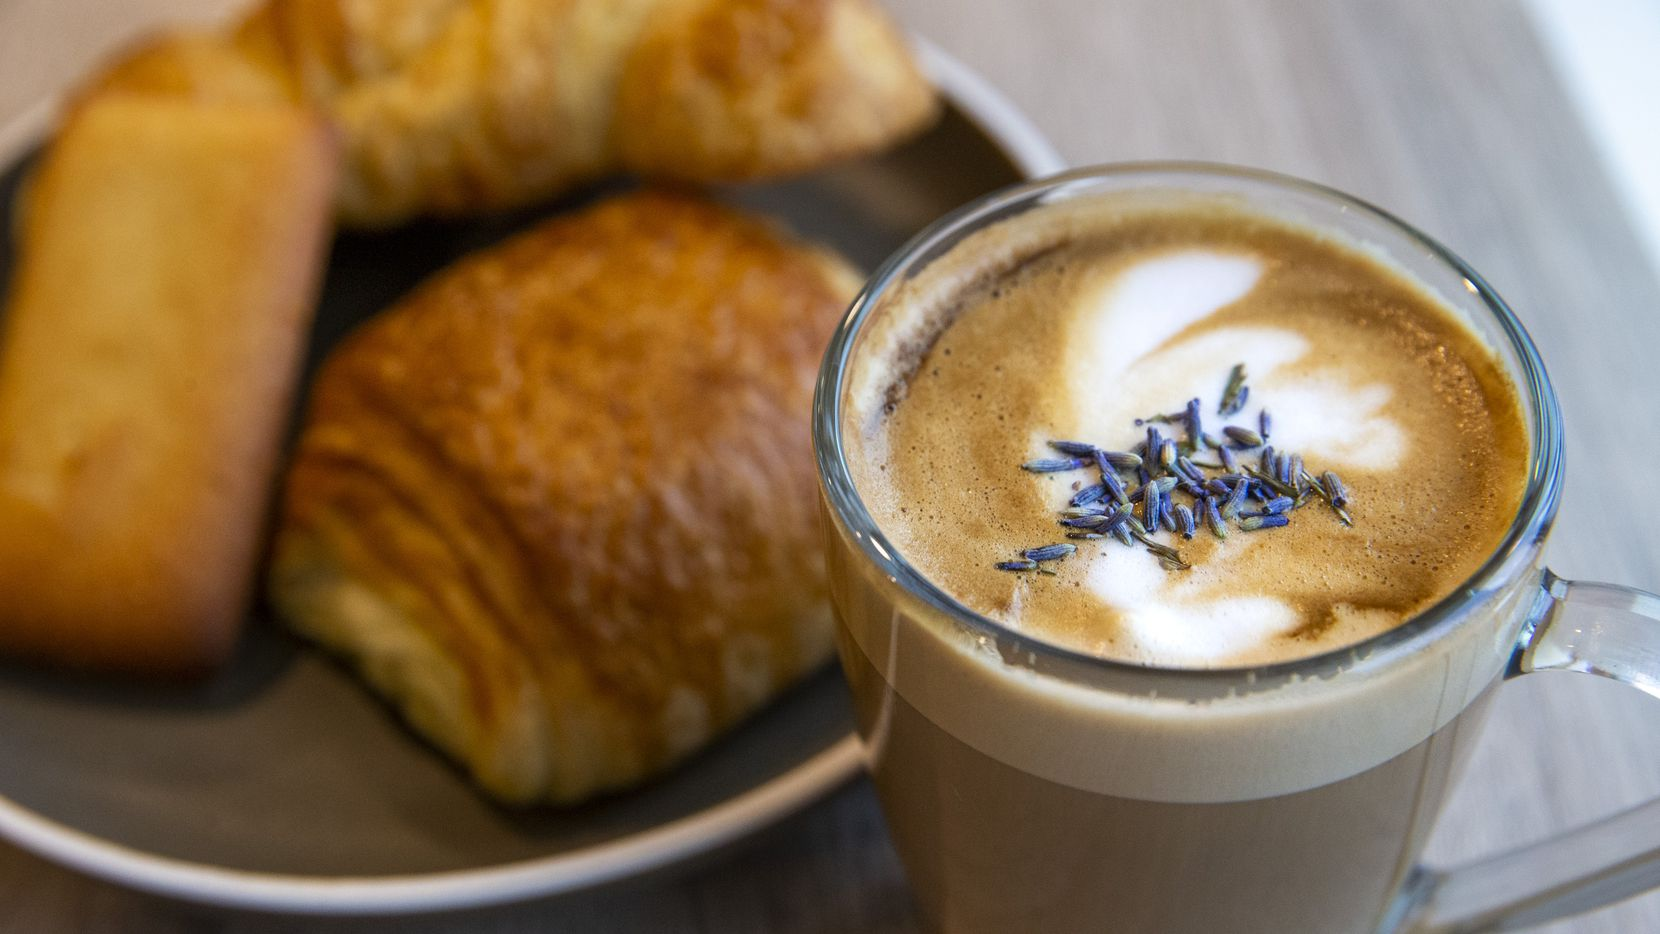 The Lucy Latte is made with goat milk and lavender at The Coffee Shop at Bonton Farms in South Dallas.